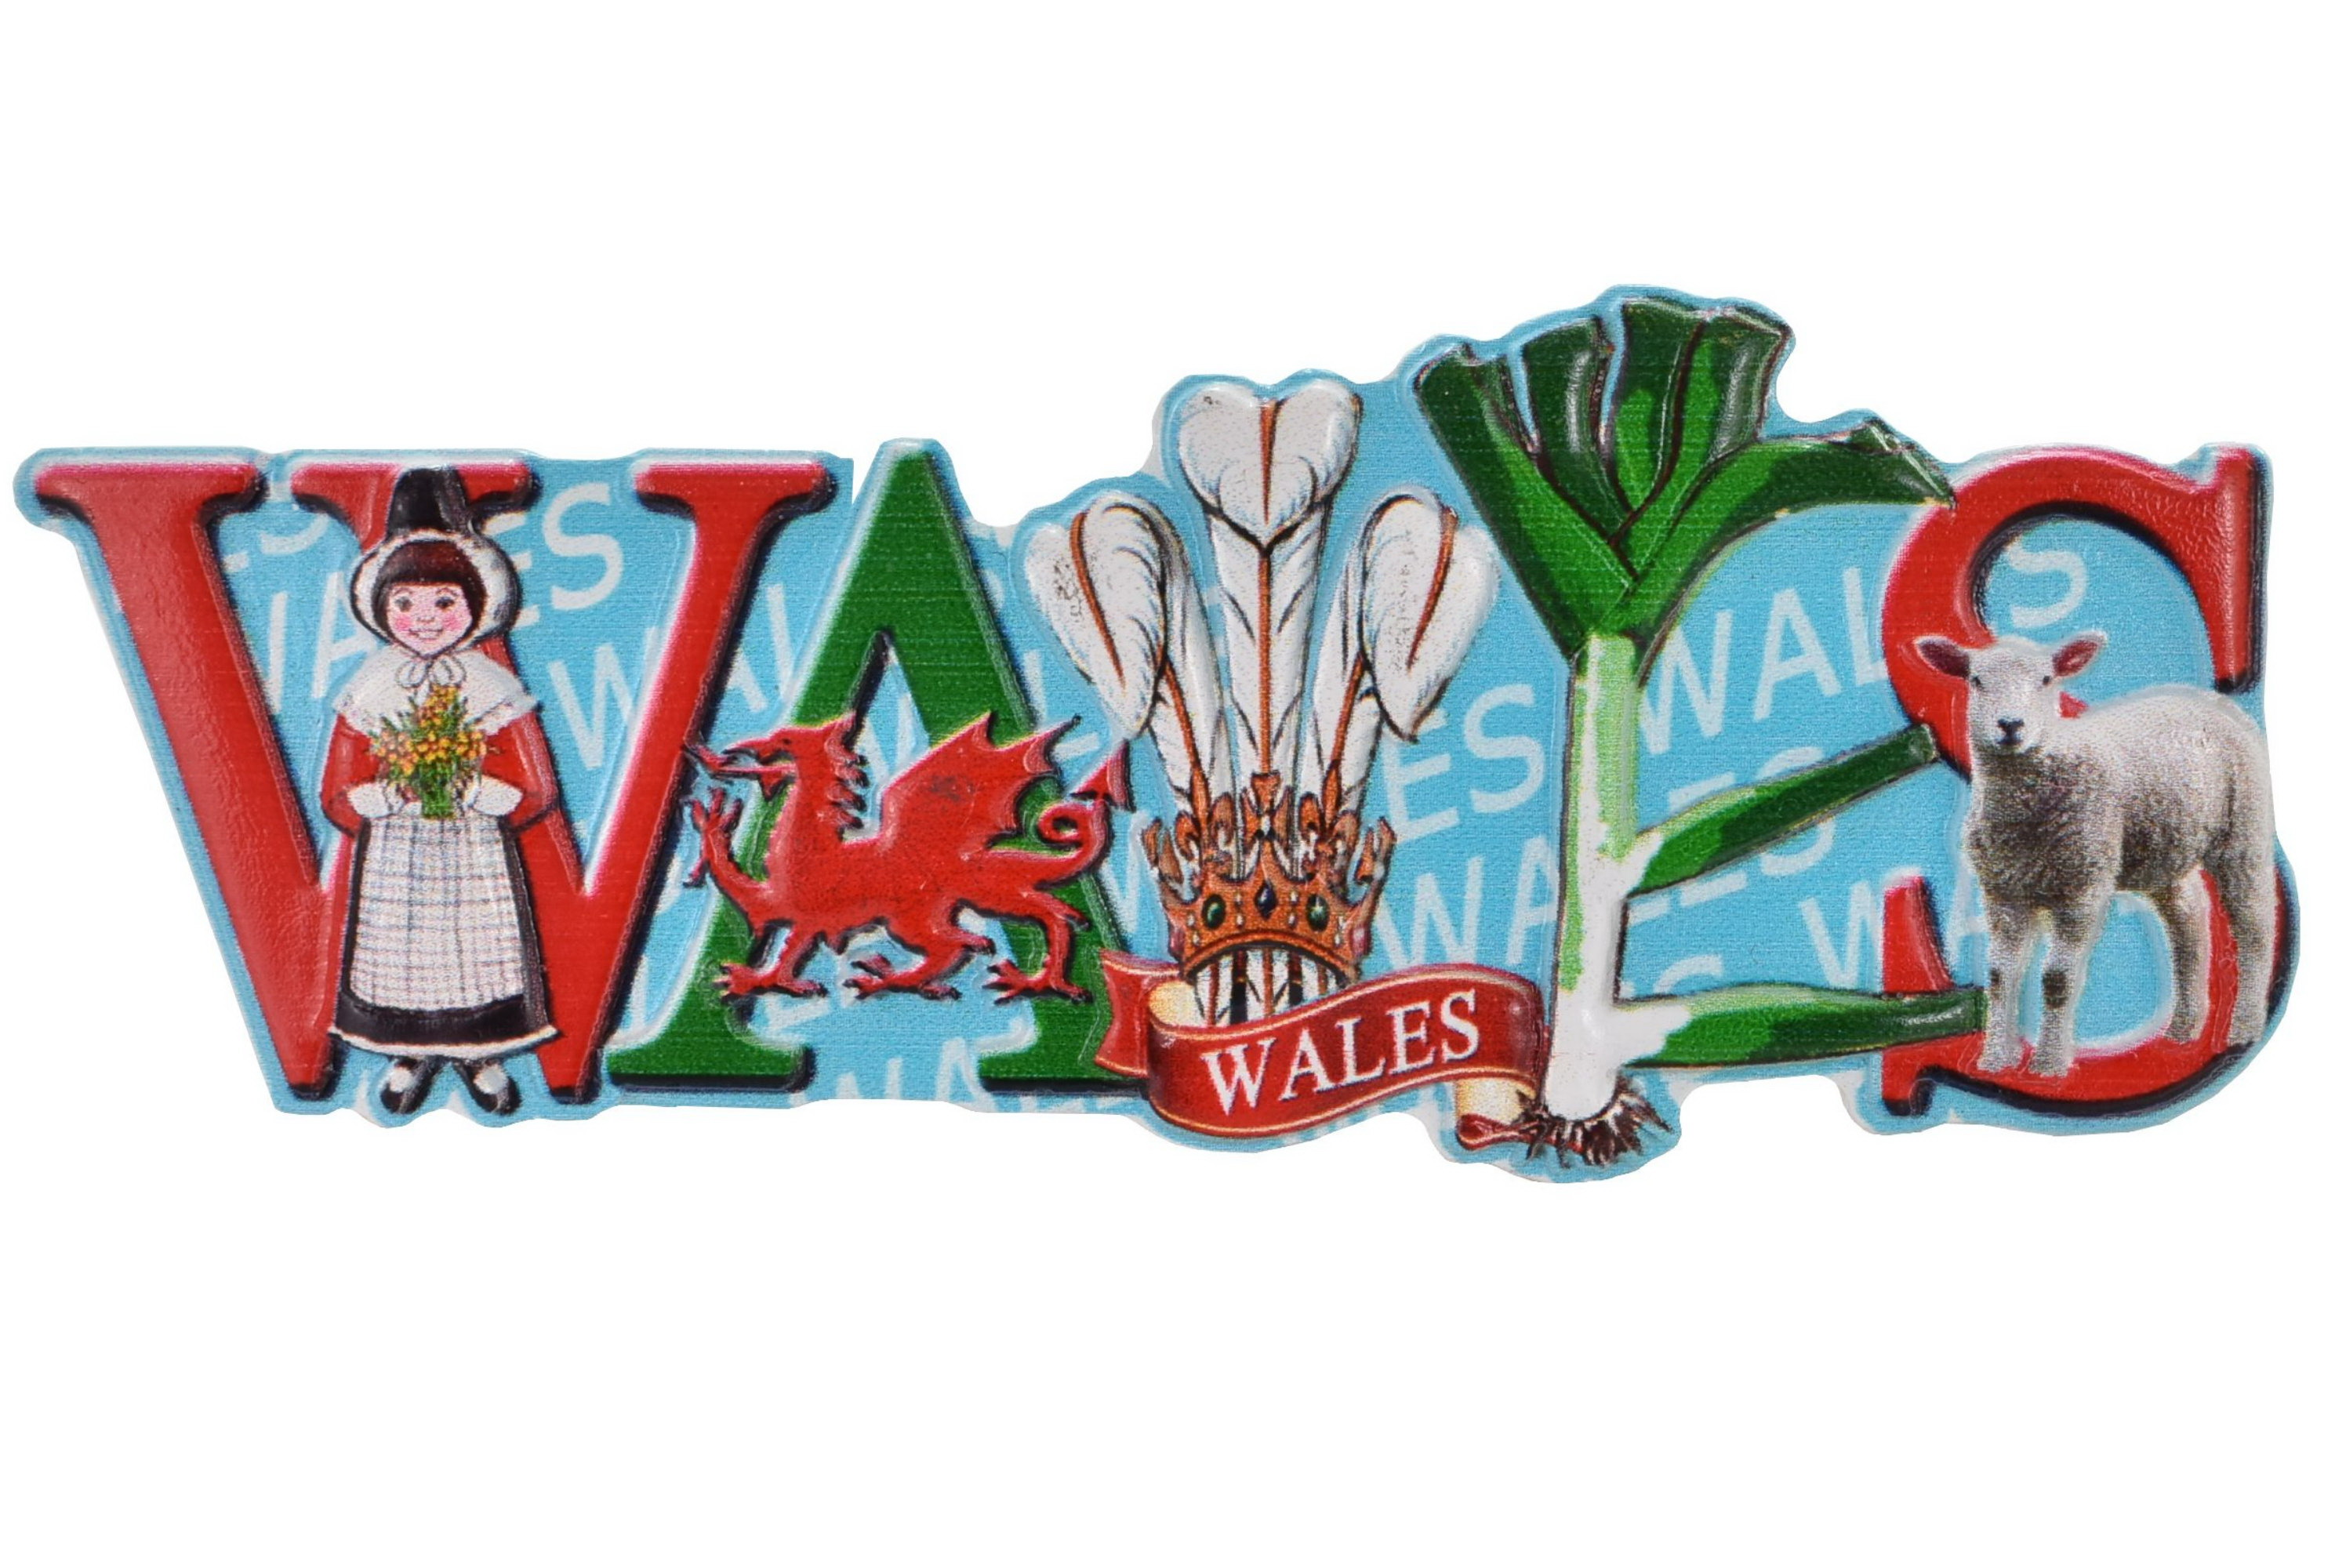 Wales Resin Magnet Printed Letters